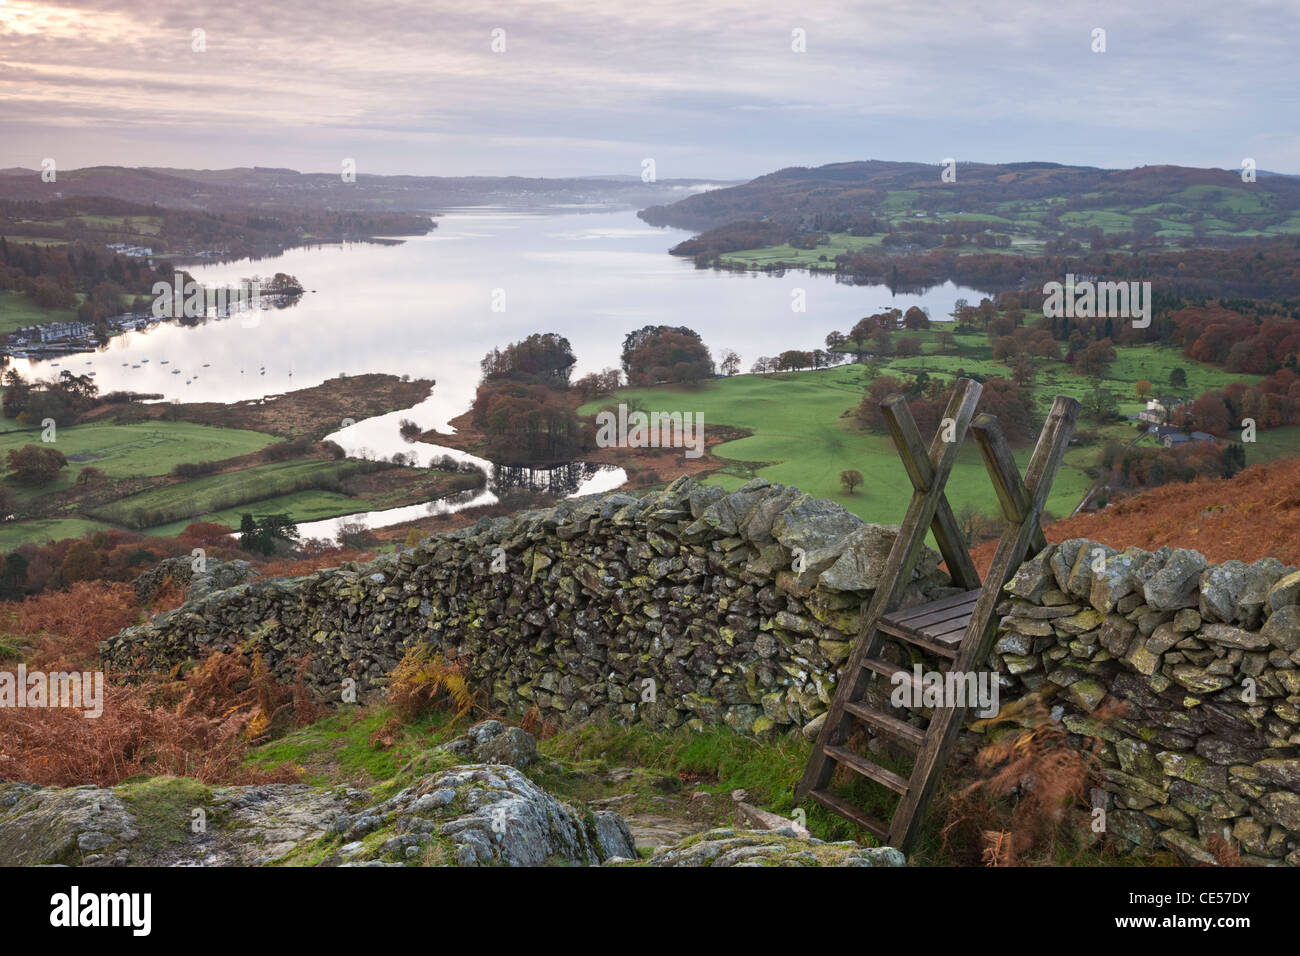 Dry stone wall and wooden stile above Lake Windermere, Lake District, Cumbria, England. Autumn (November) 2011. - Stock Image